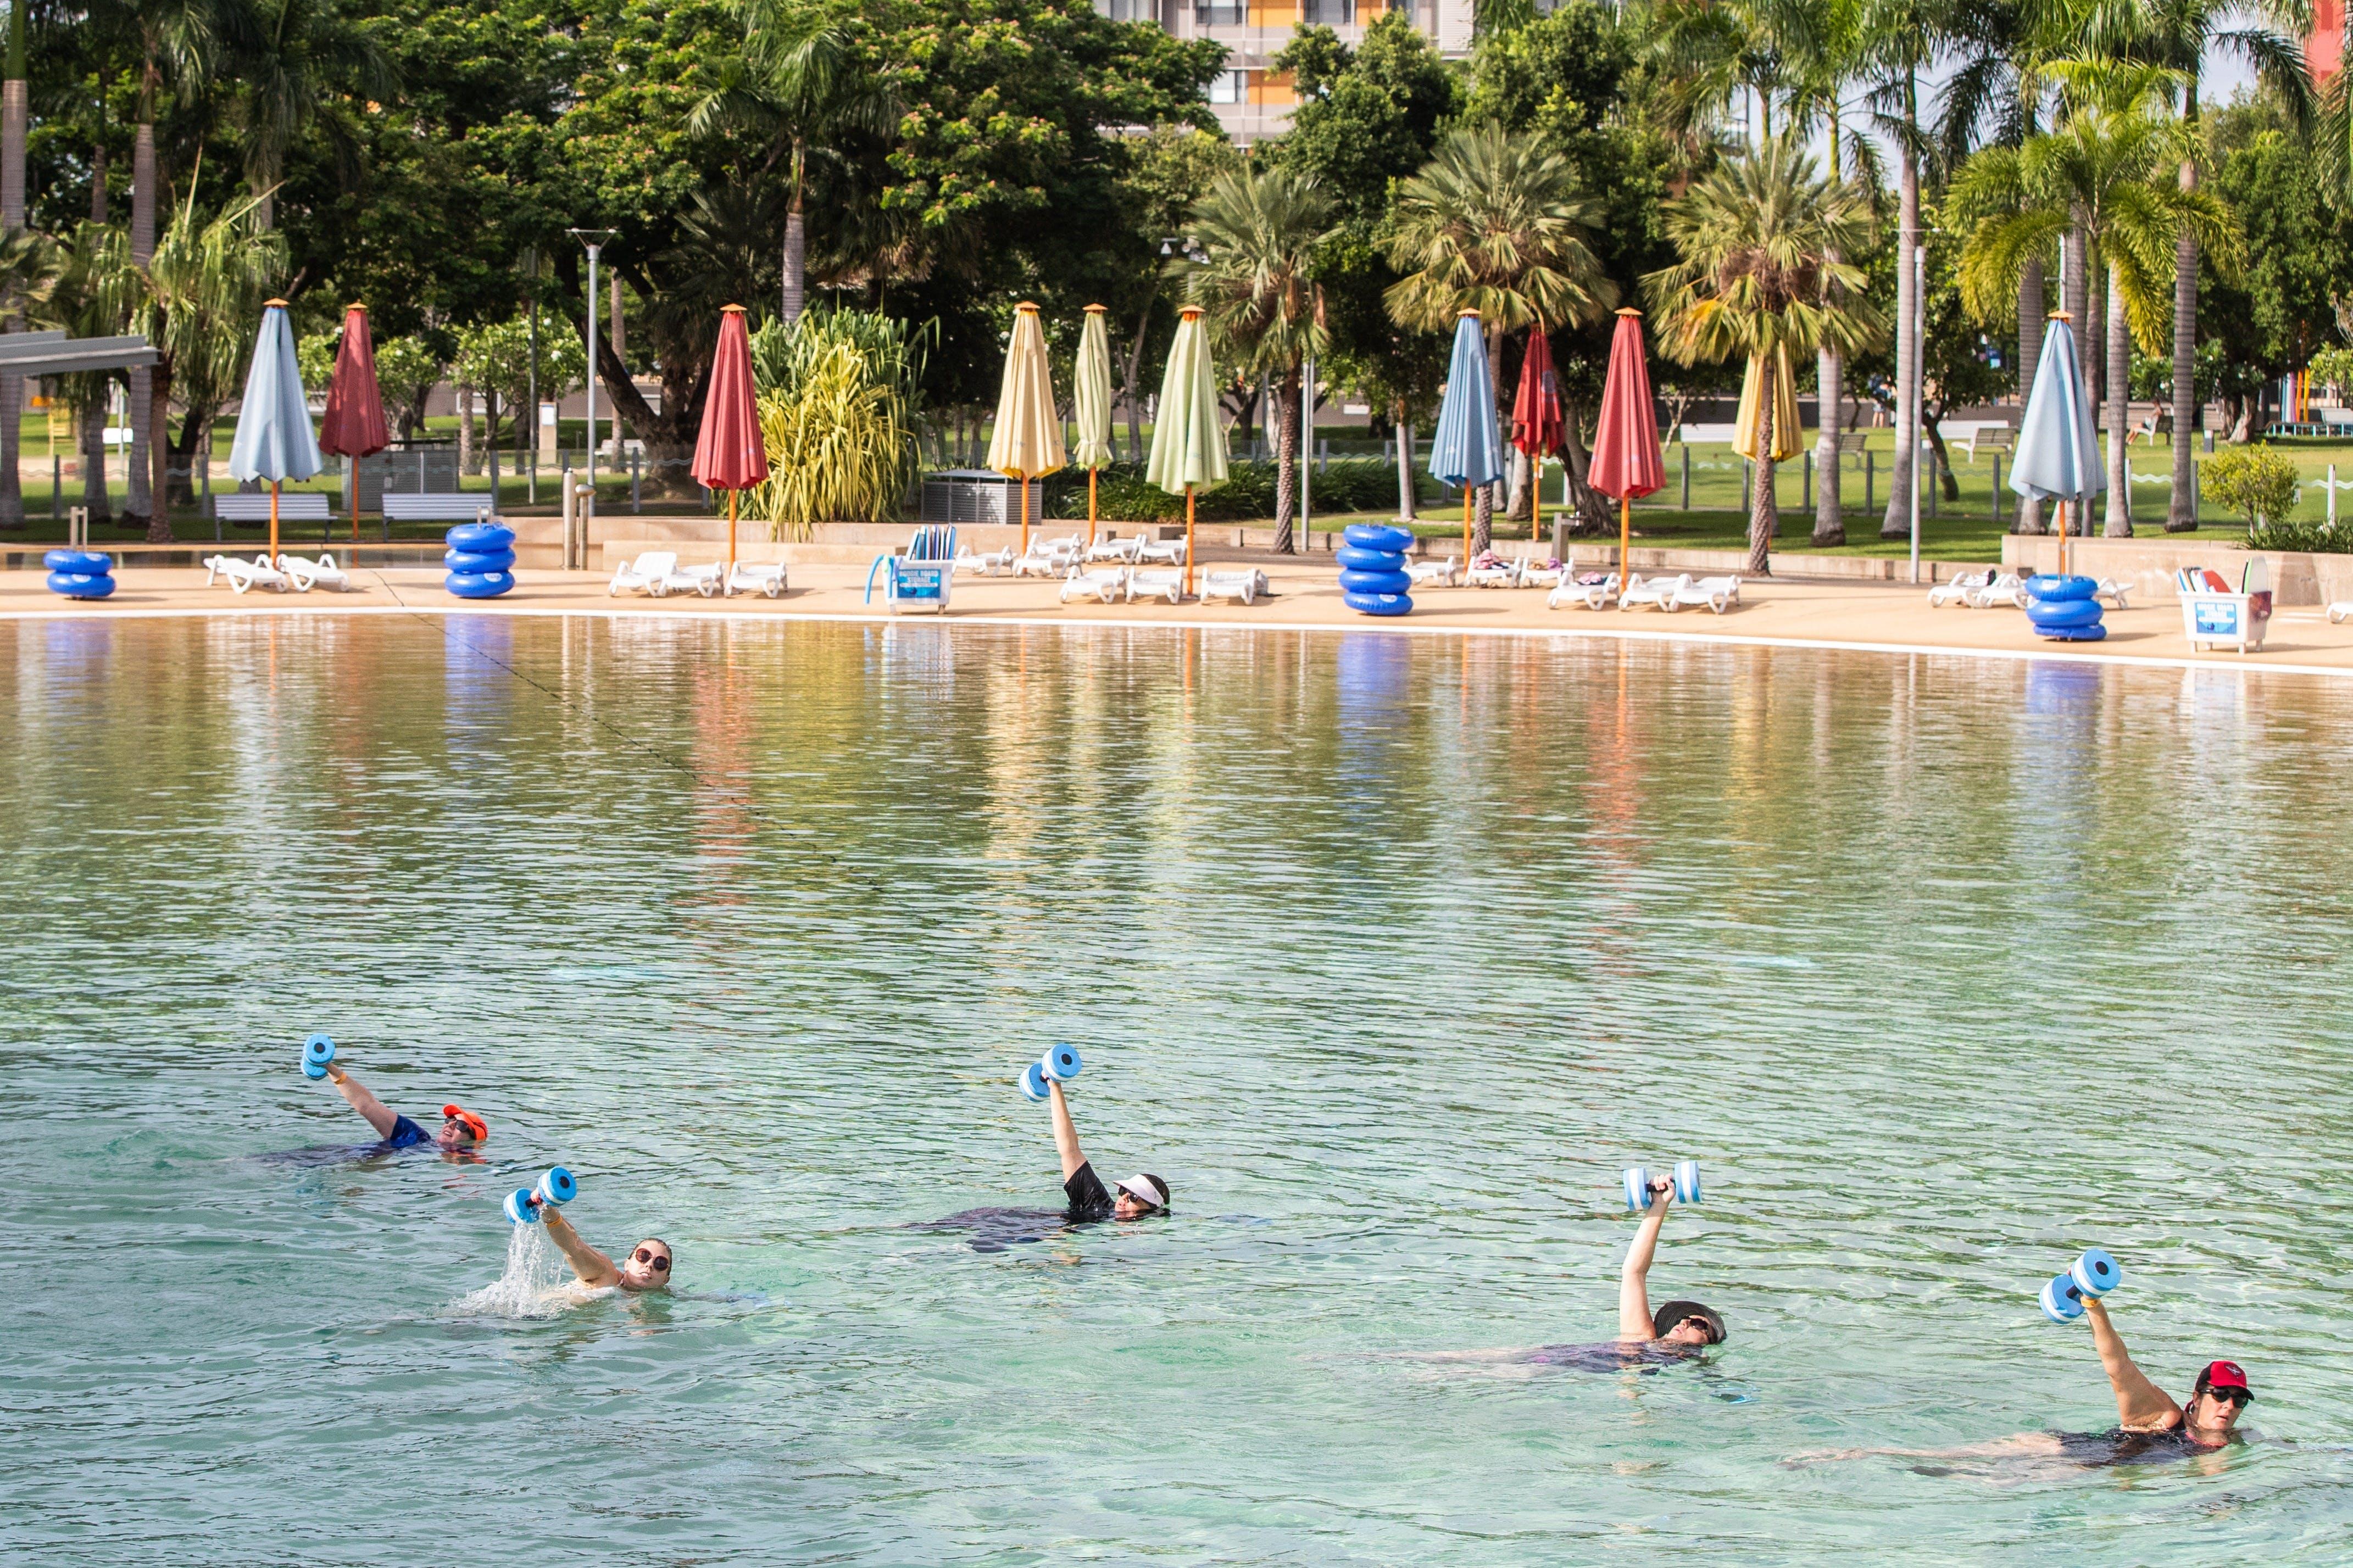 Aqua fitness in the Wave Lagoon - Accommodation Guide